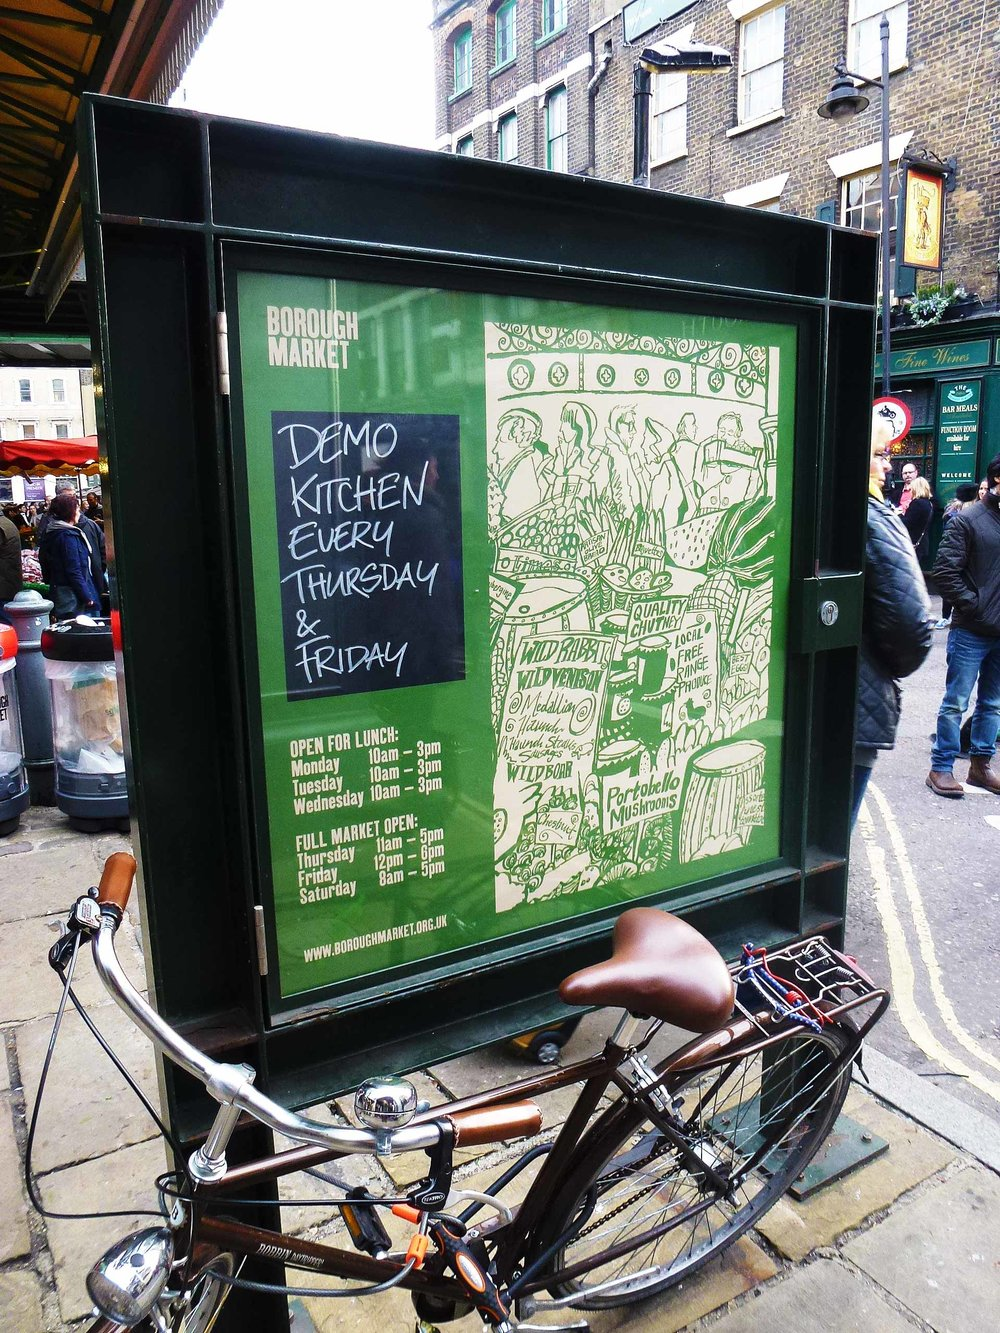 Borough-Market-demo-kitchen-poster.jpg